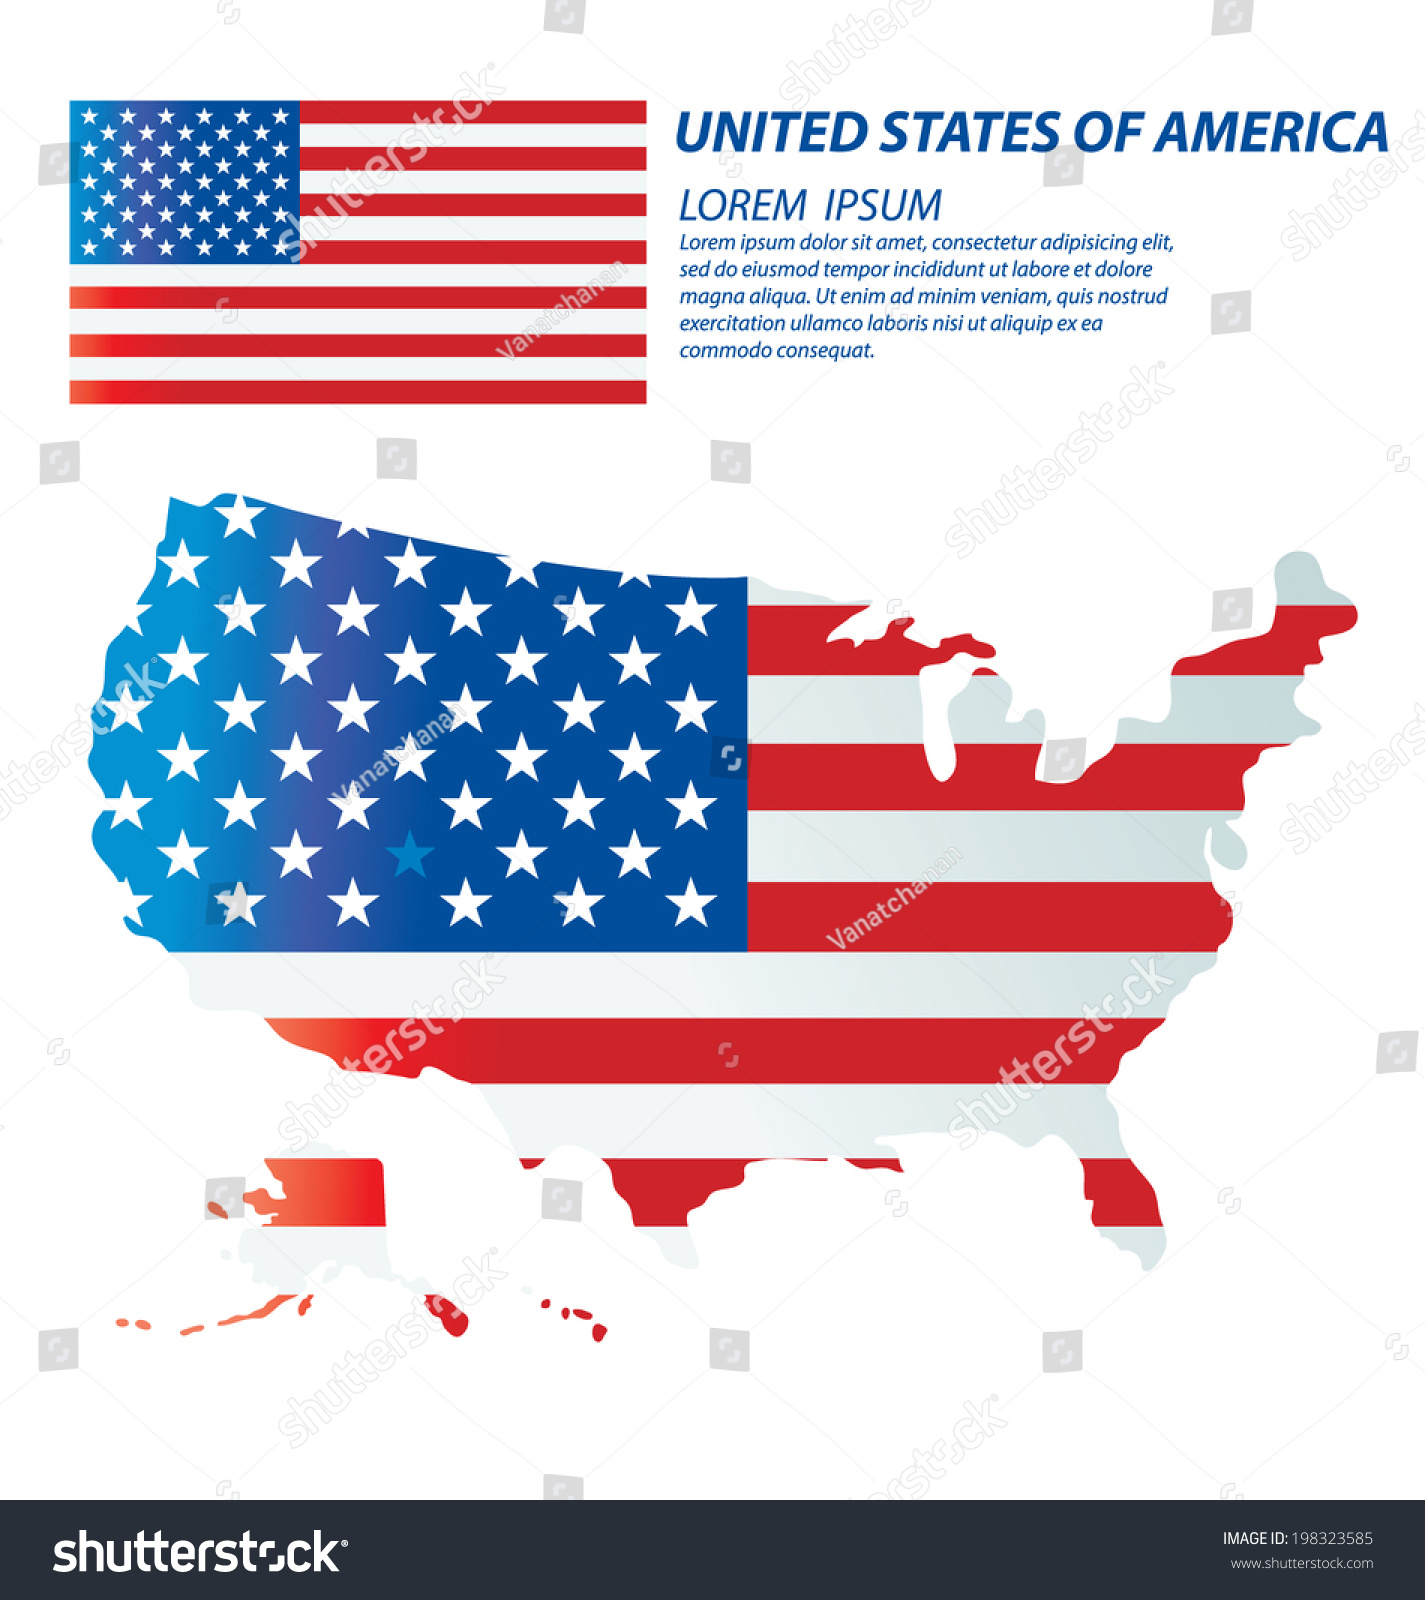 a history of the colgate company in the united states of america A comprehensive background of colgate-palmolive containing its history and from outside the united states in america, colgate's share of.